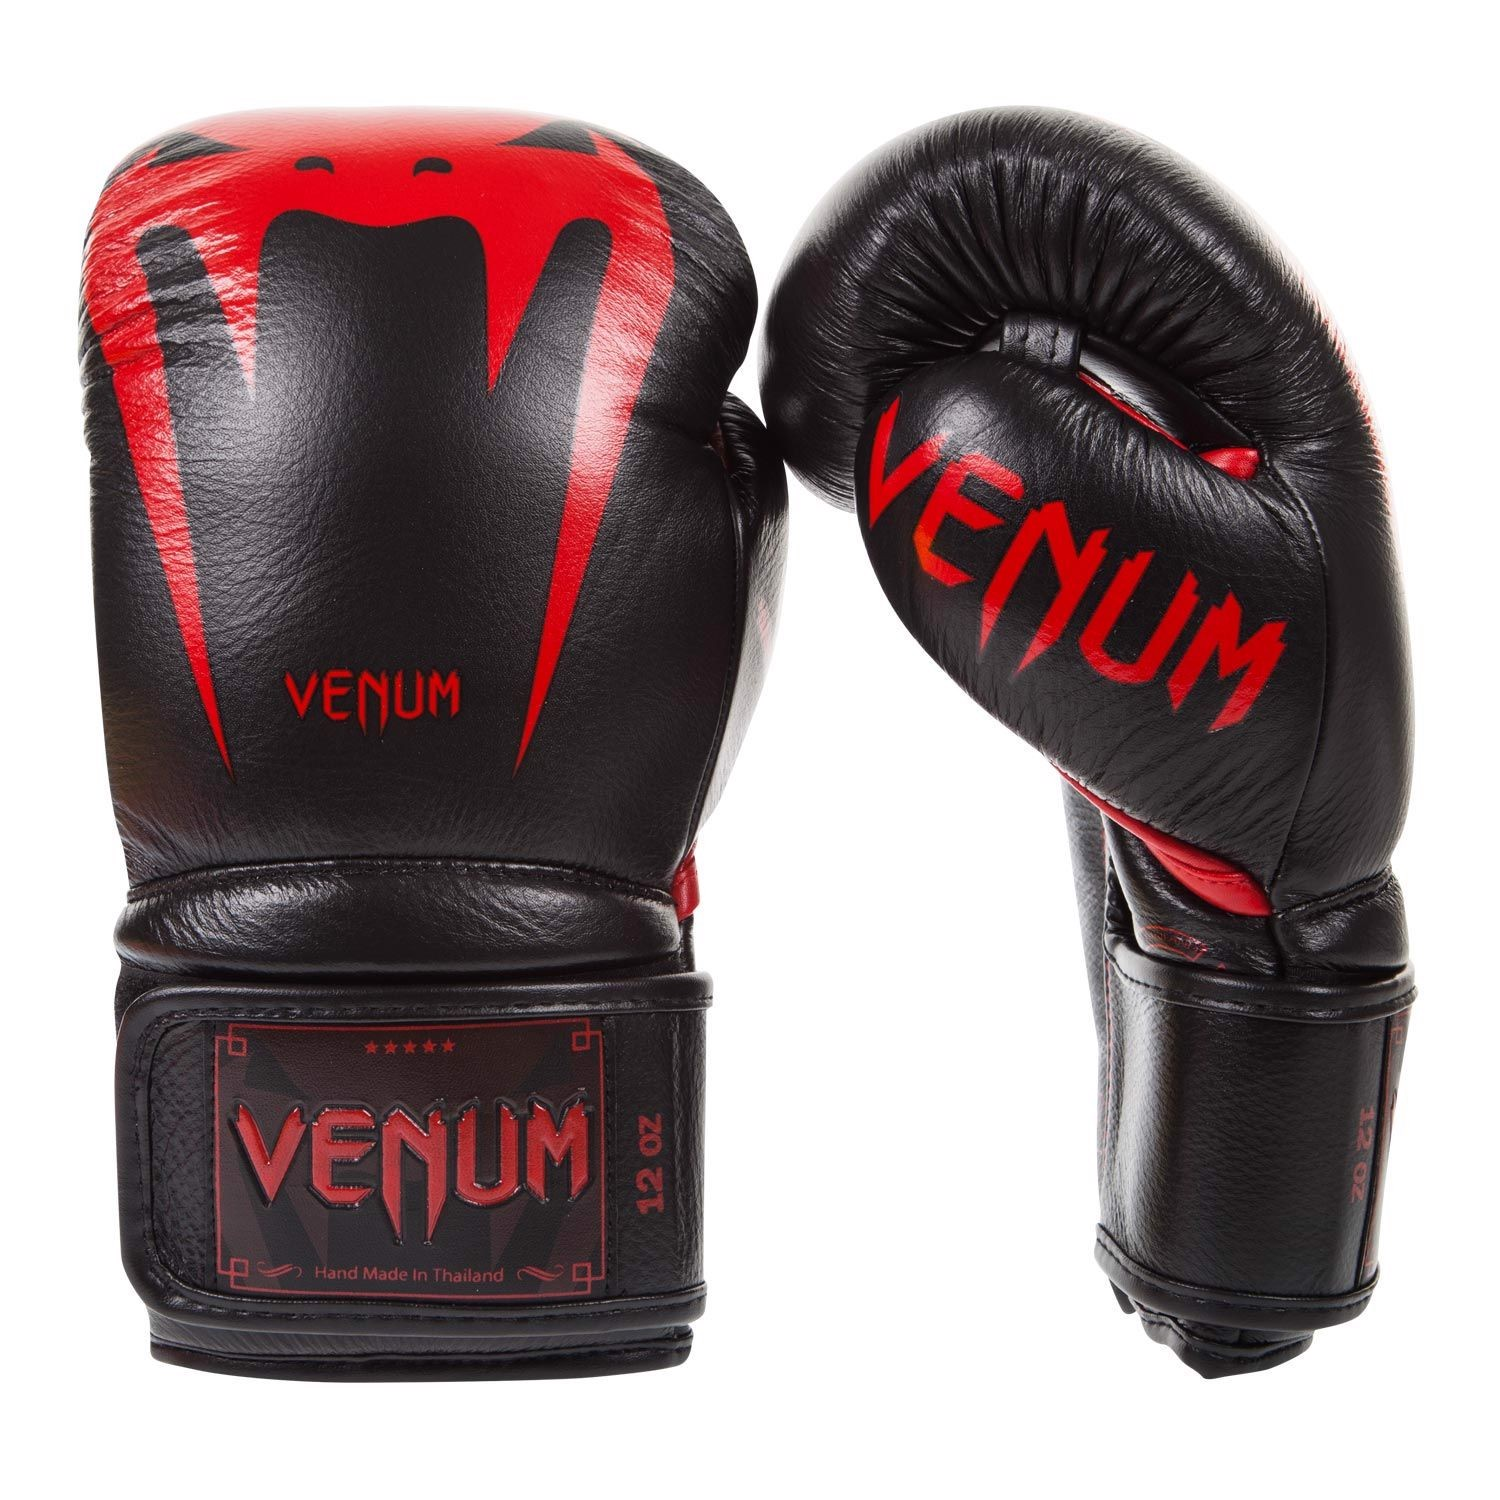 Găng tay boxing VENUM GIANT 3.0 Leather Sparring Boxing Gloves - RED